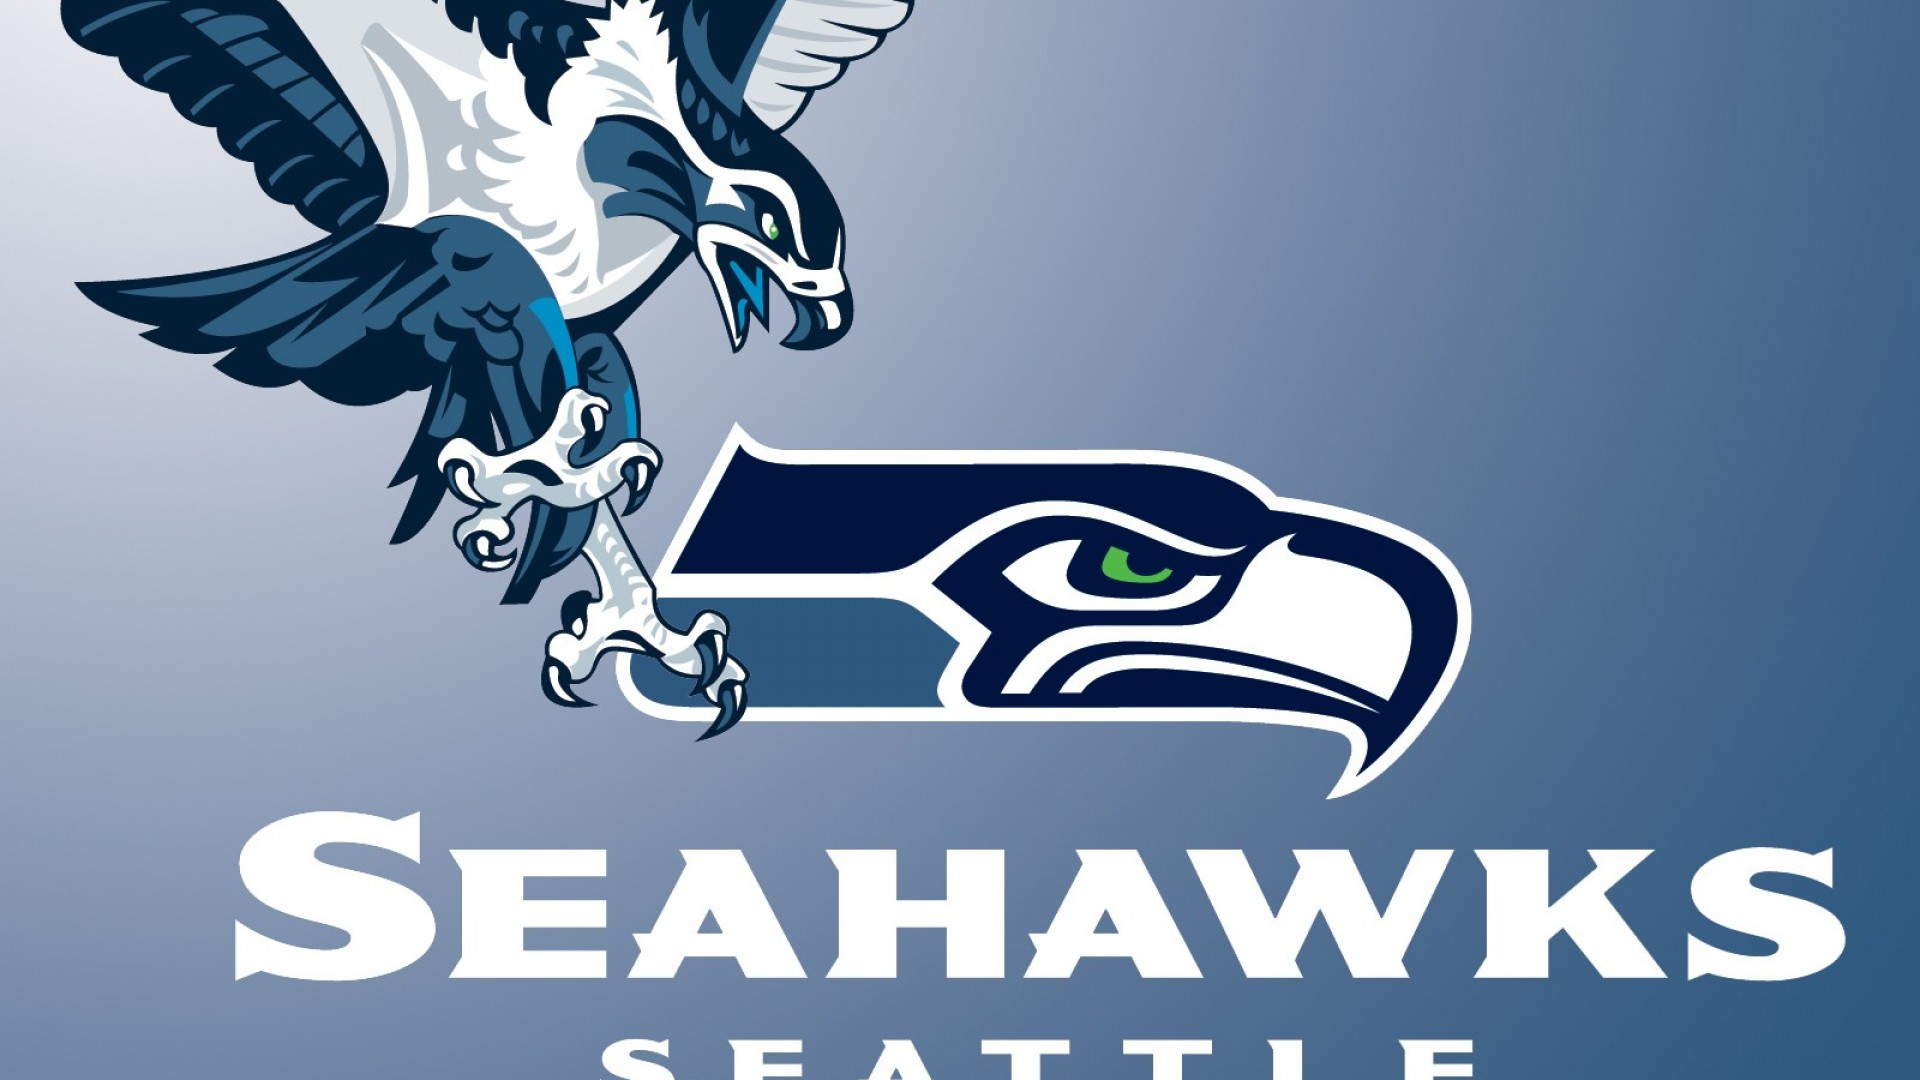 Seattle Seahawks Wallpaper 1920x1080: 4K Seahawks Wallpaper